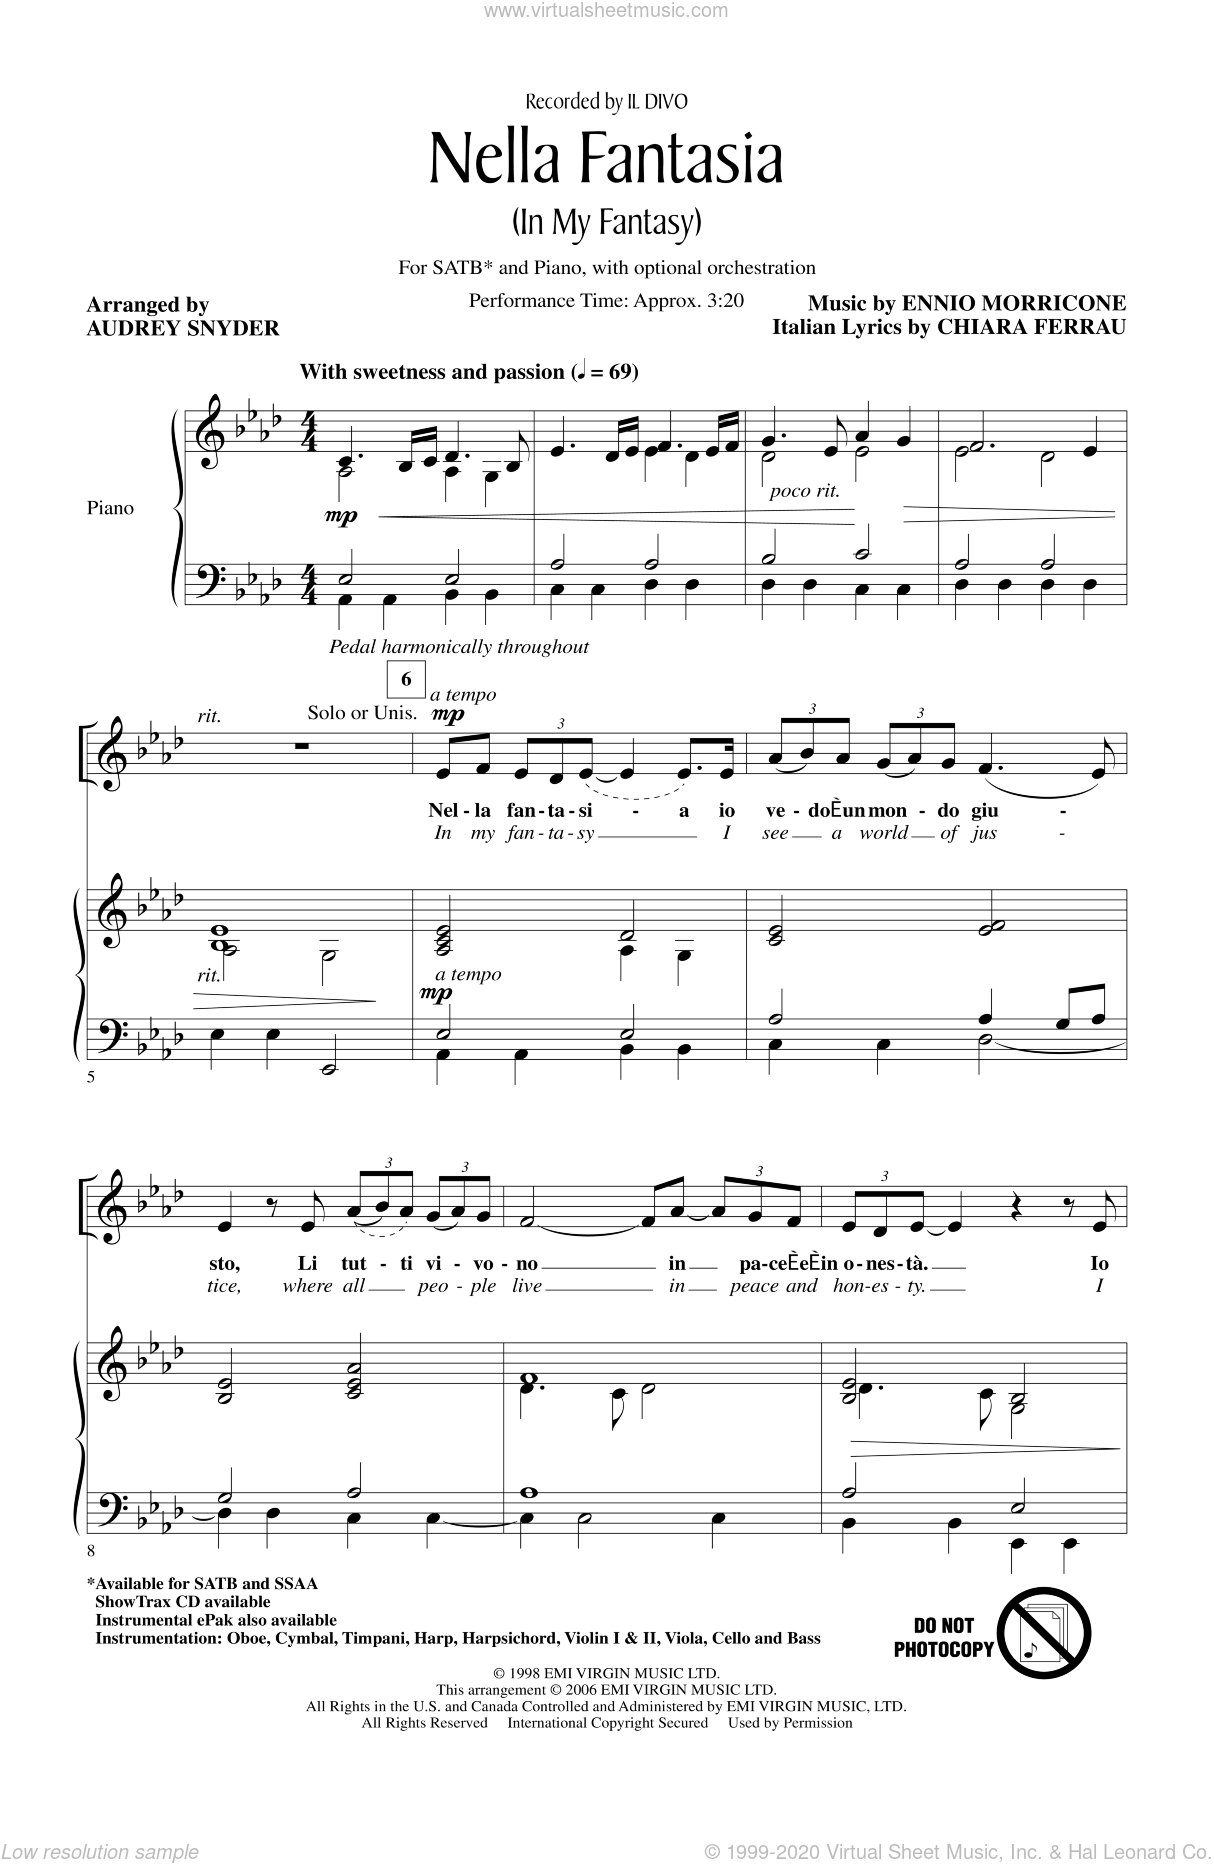 Nella Fantasia (In My Fantasy) sheet music for choir and piano (SATB) by Ennio Morricone